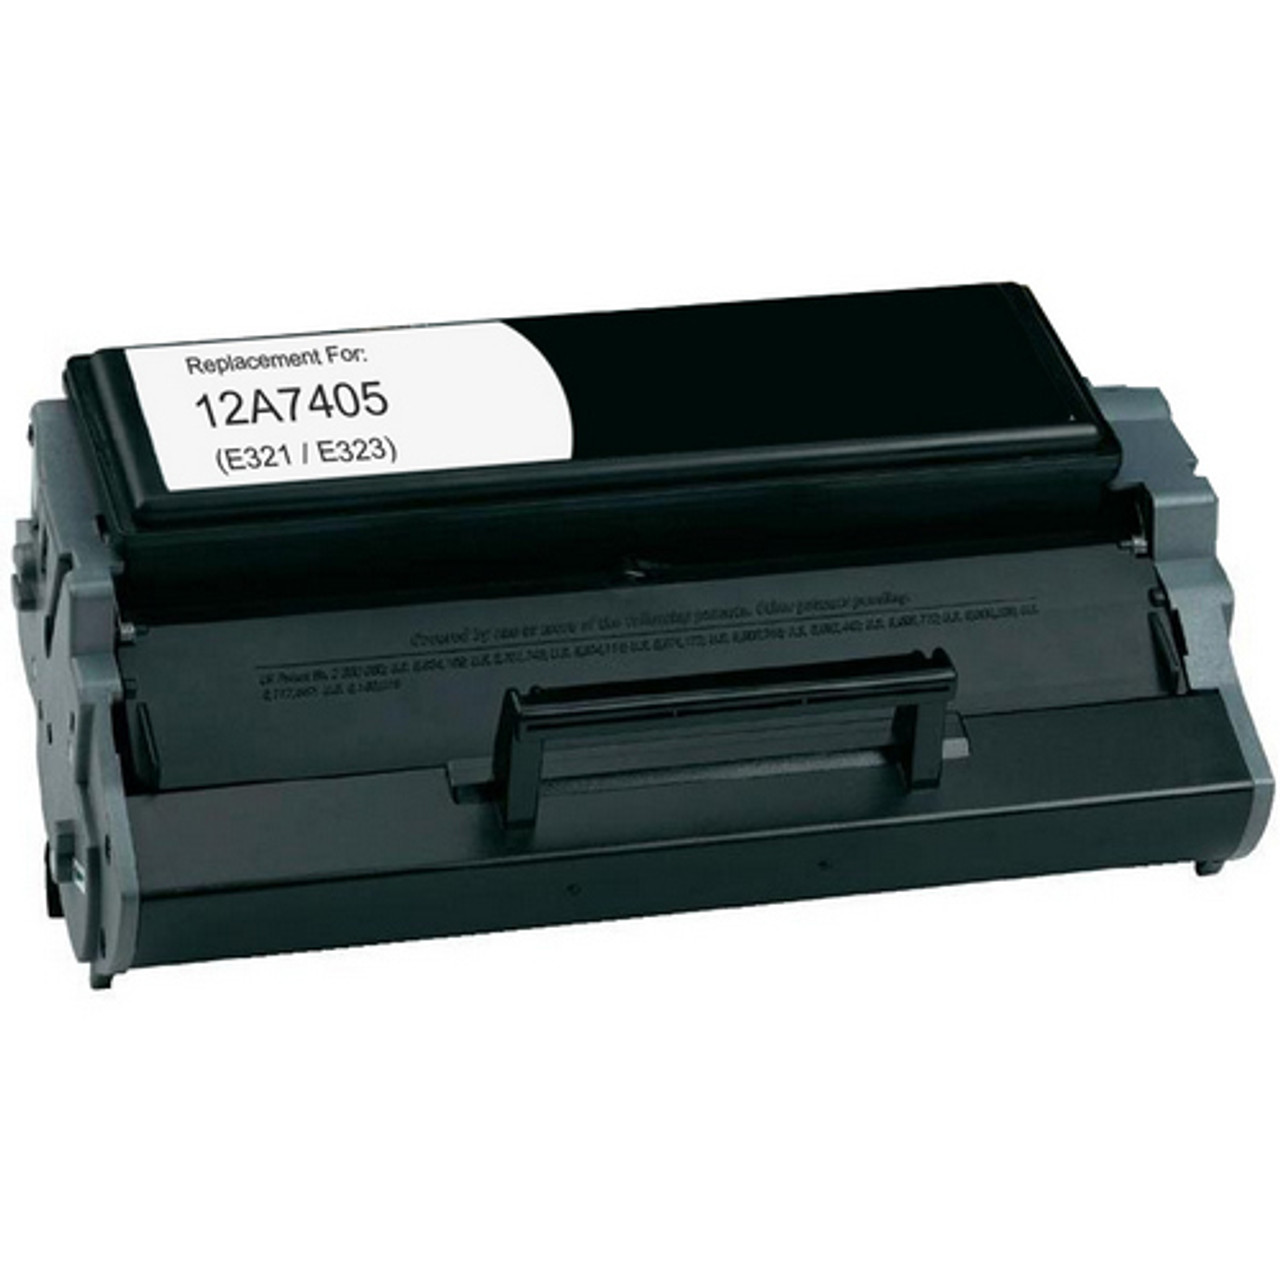 Green Way Toner Remanufactured Toner Replacement for LEXMARK E460X21AM Yields 15000